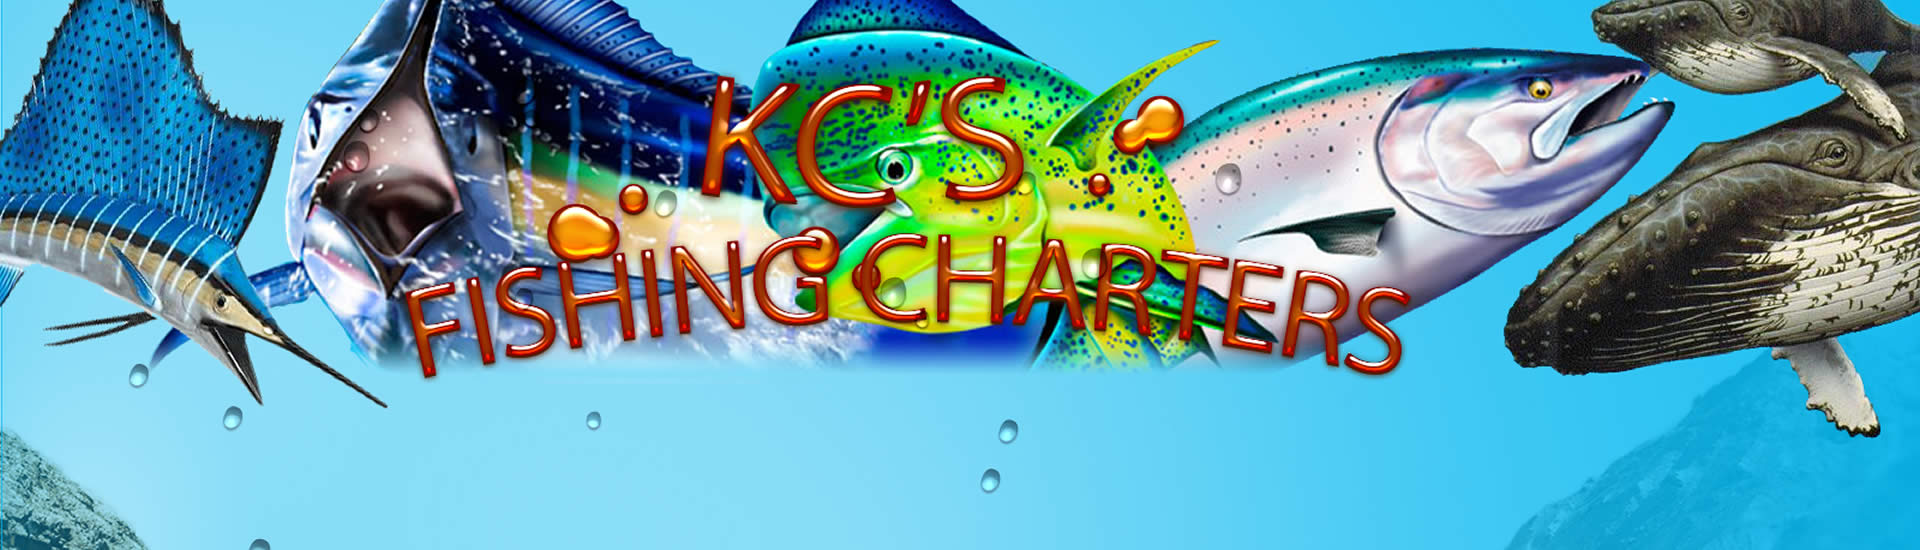 caseys-fishing-charters-coffs-coast-banner